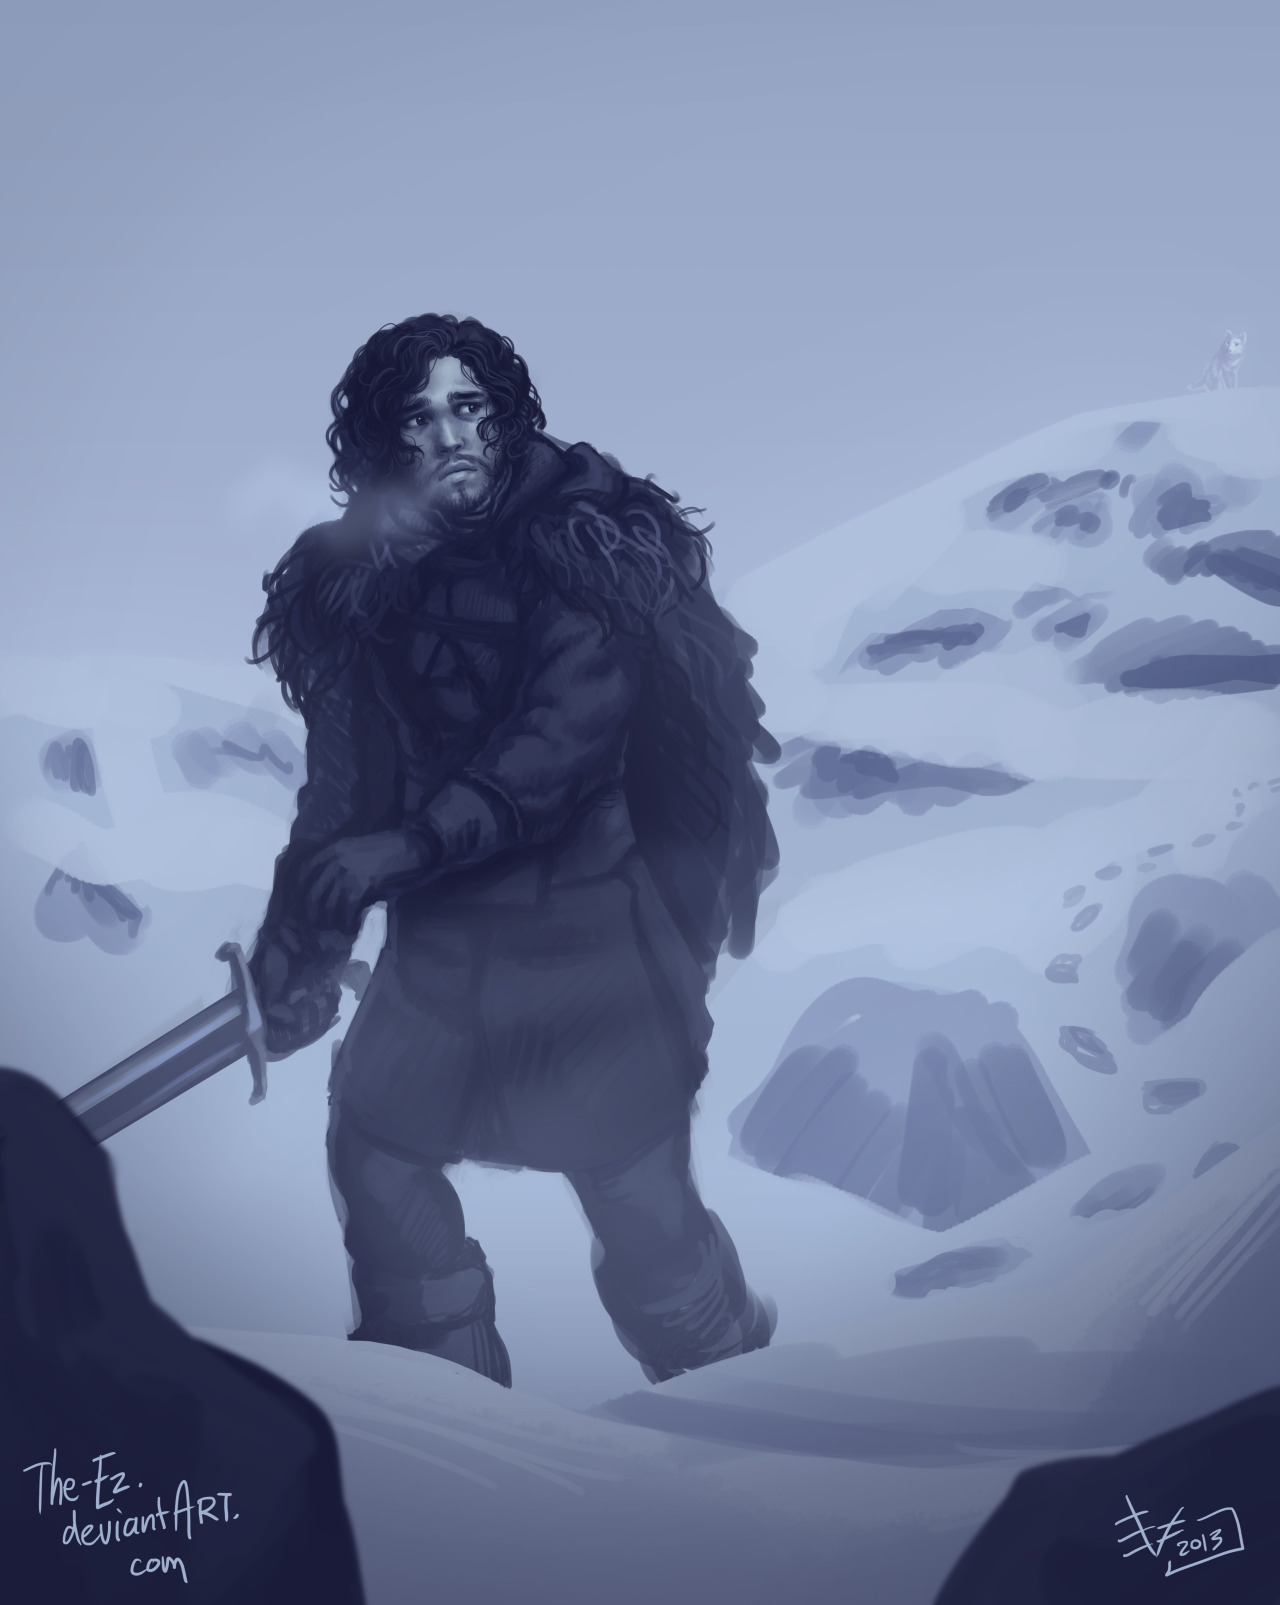 Jon Snow is Still Sad by *The-Ez Don't be sad, Jon! The Season Premiere is ToNIGHT!! I fully expect the quality and quantity of ASOIAF art to ramp up over the next few months now that we've got season three to keep us all inspired :)